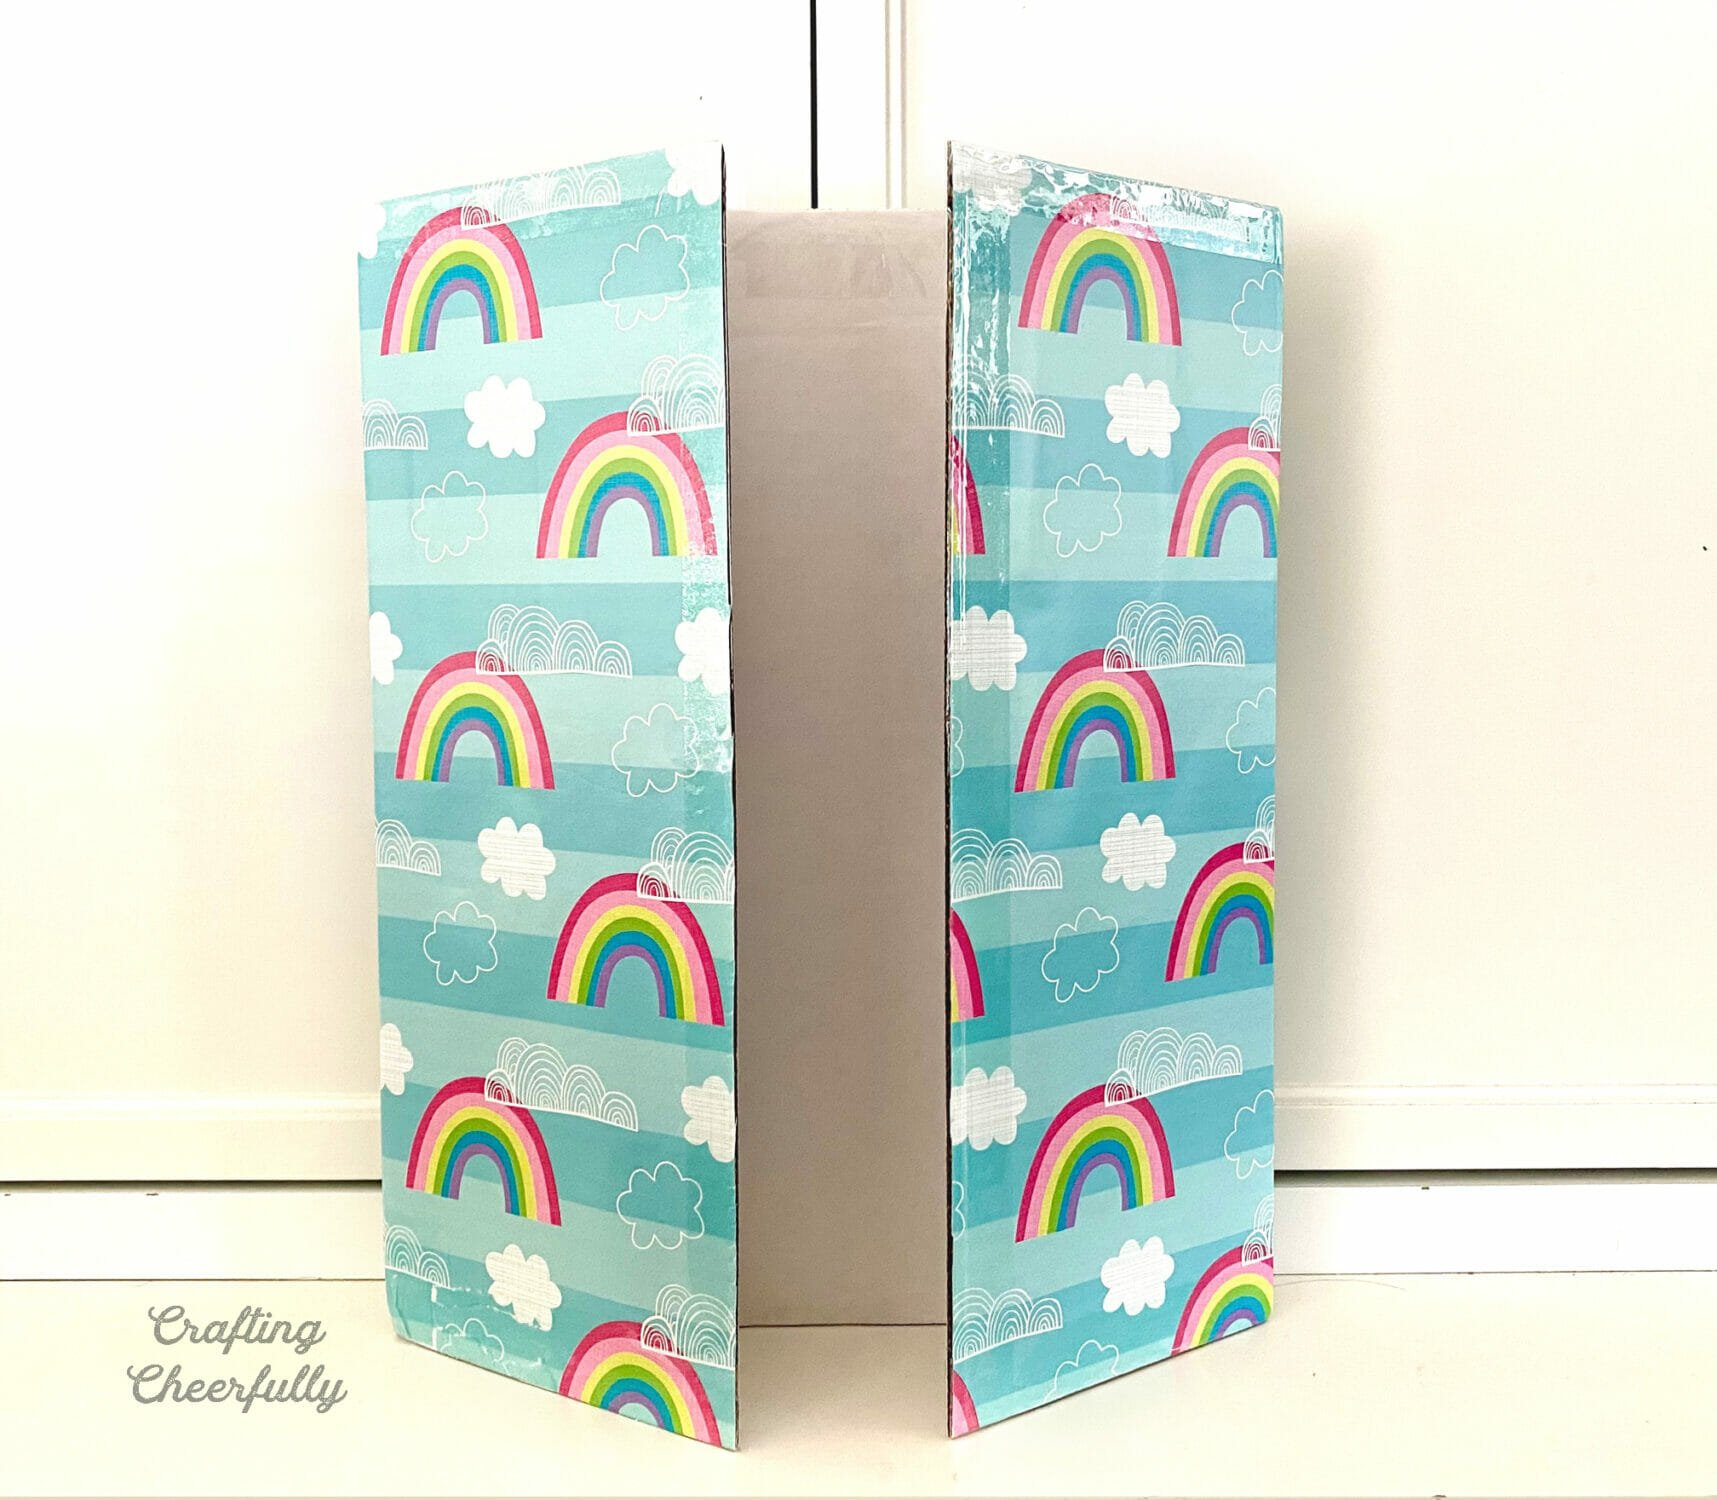 Tri fold board covered in rainbow and cloud wrapping paper.